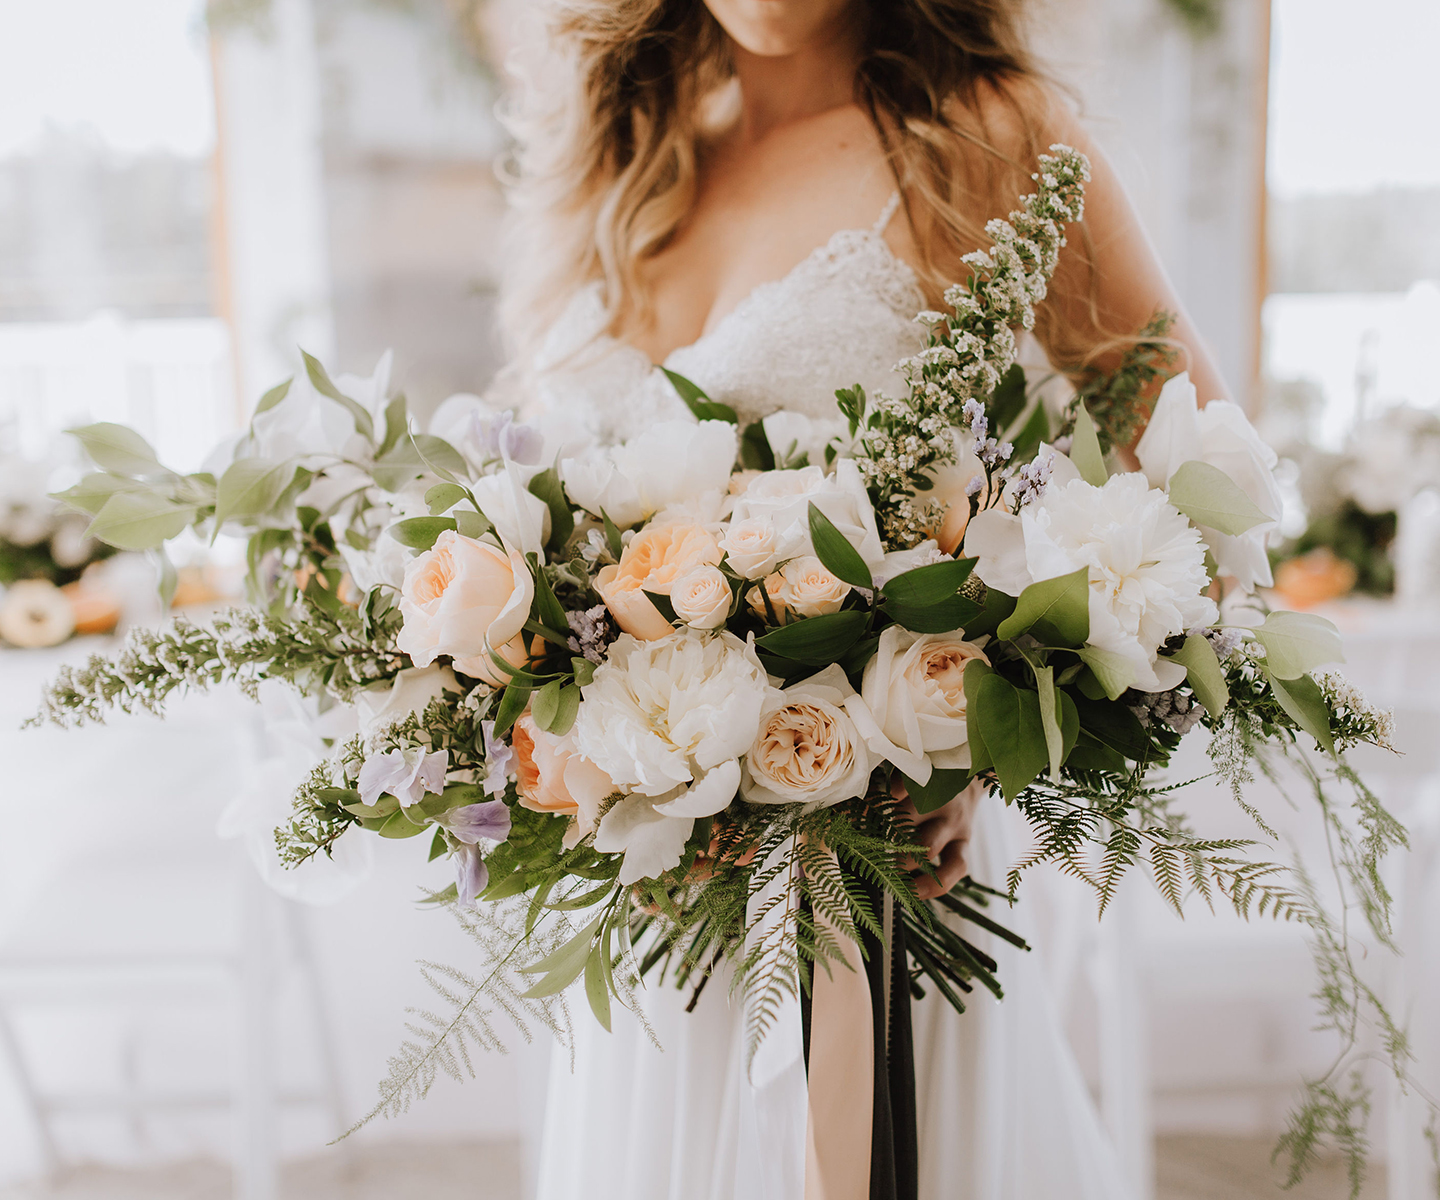 Bridal Bouquet Inspiration for Spring: 12 of the Prettiest Bouquets We've Seen This Spring in Alberta and the Rockies - MJs Floral Boutique on The Bronte Bride